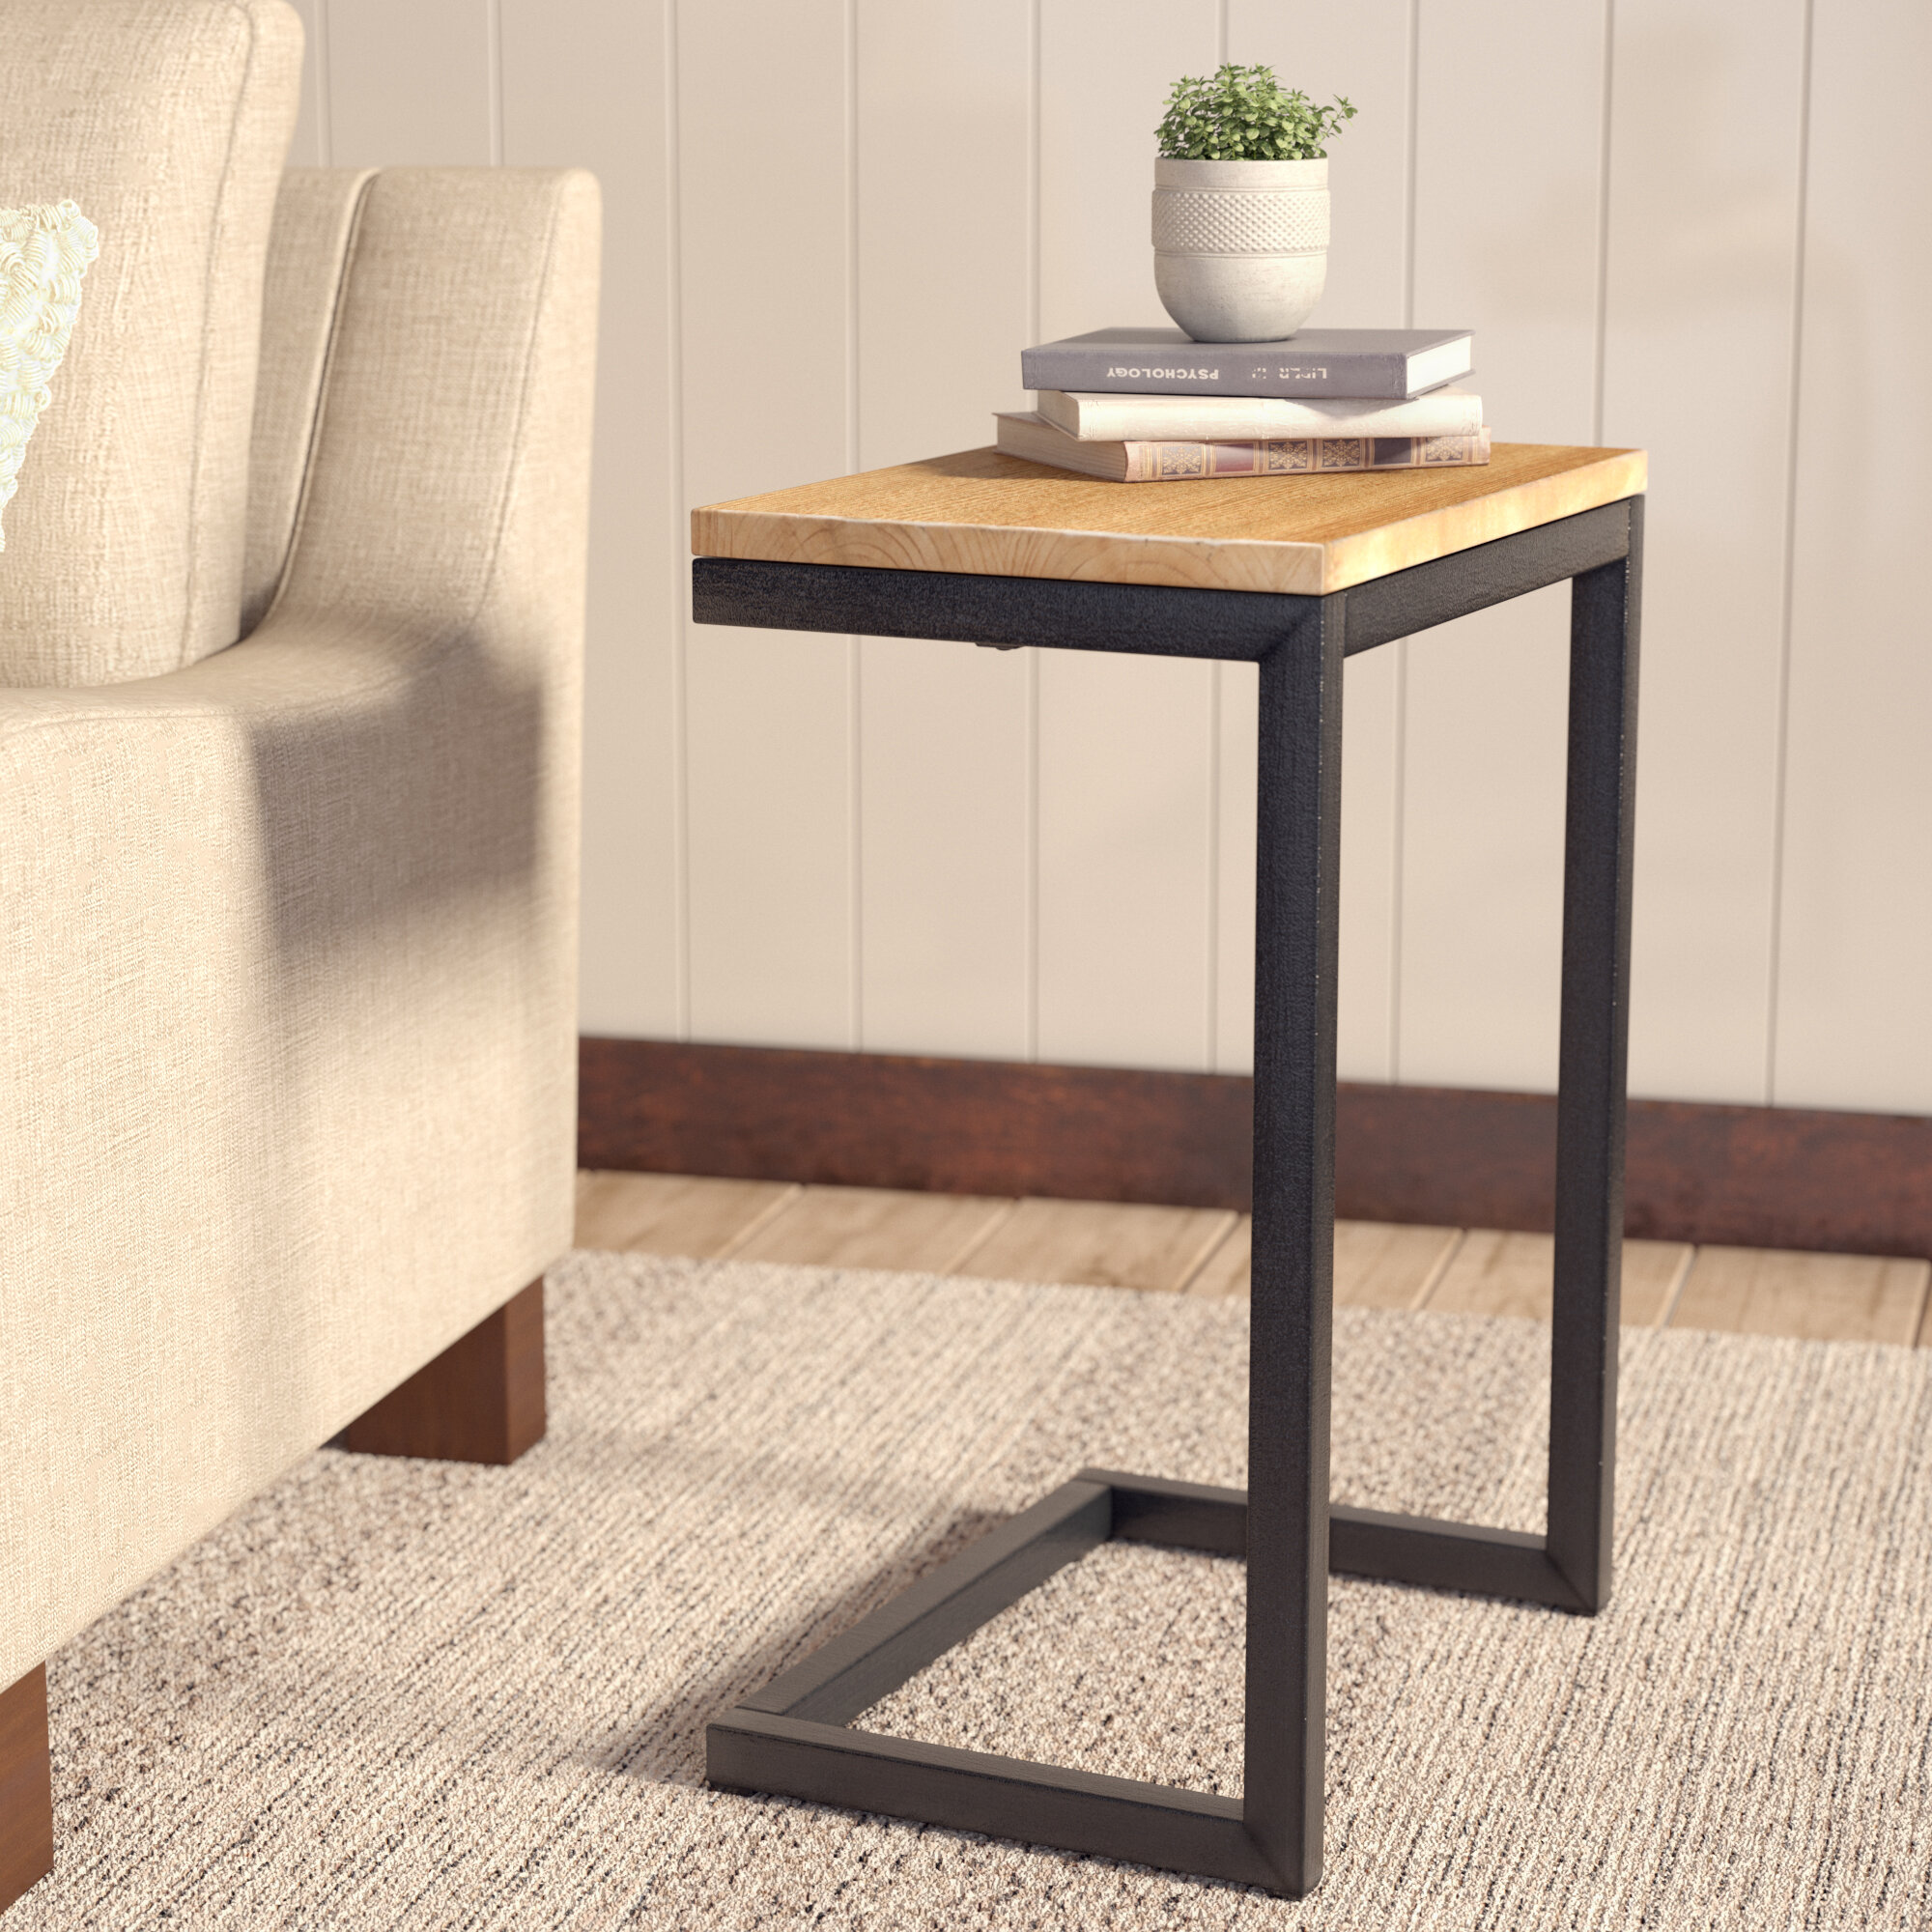 c shaped rustic sharleen pdx end wayfair furniture table union